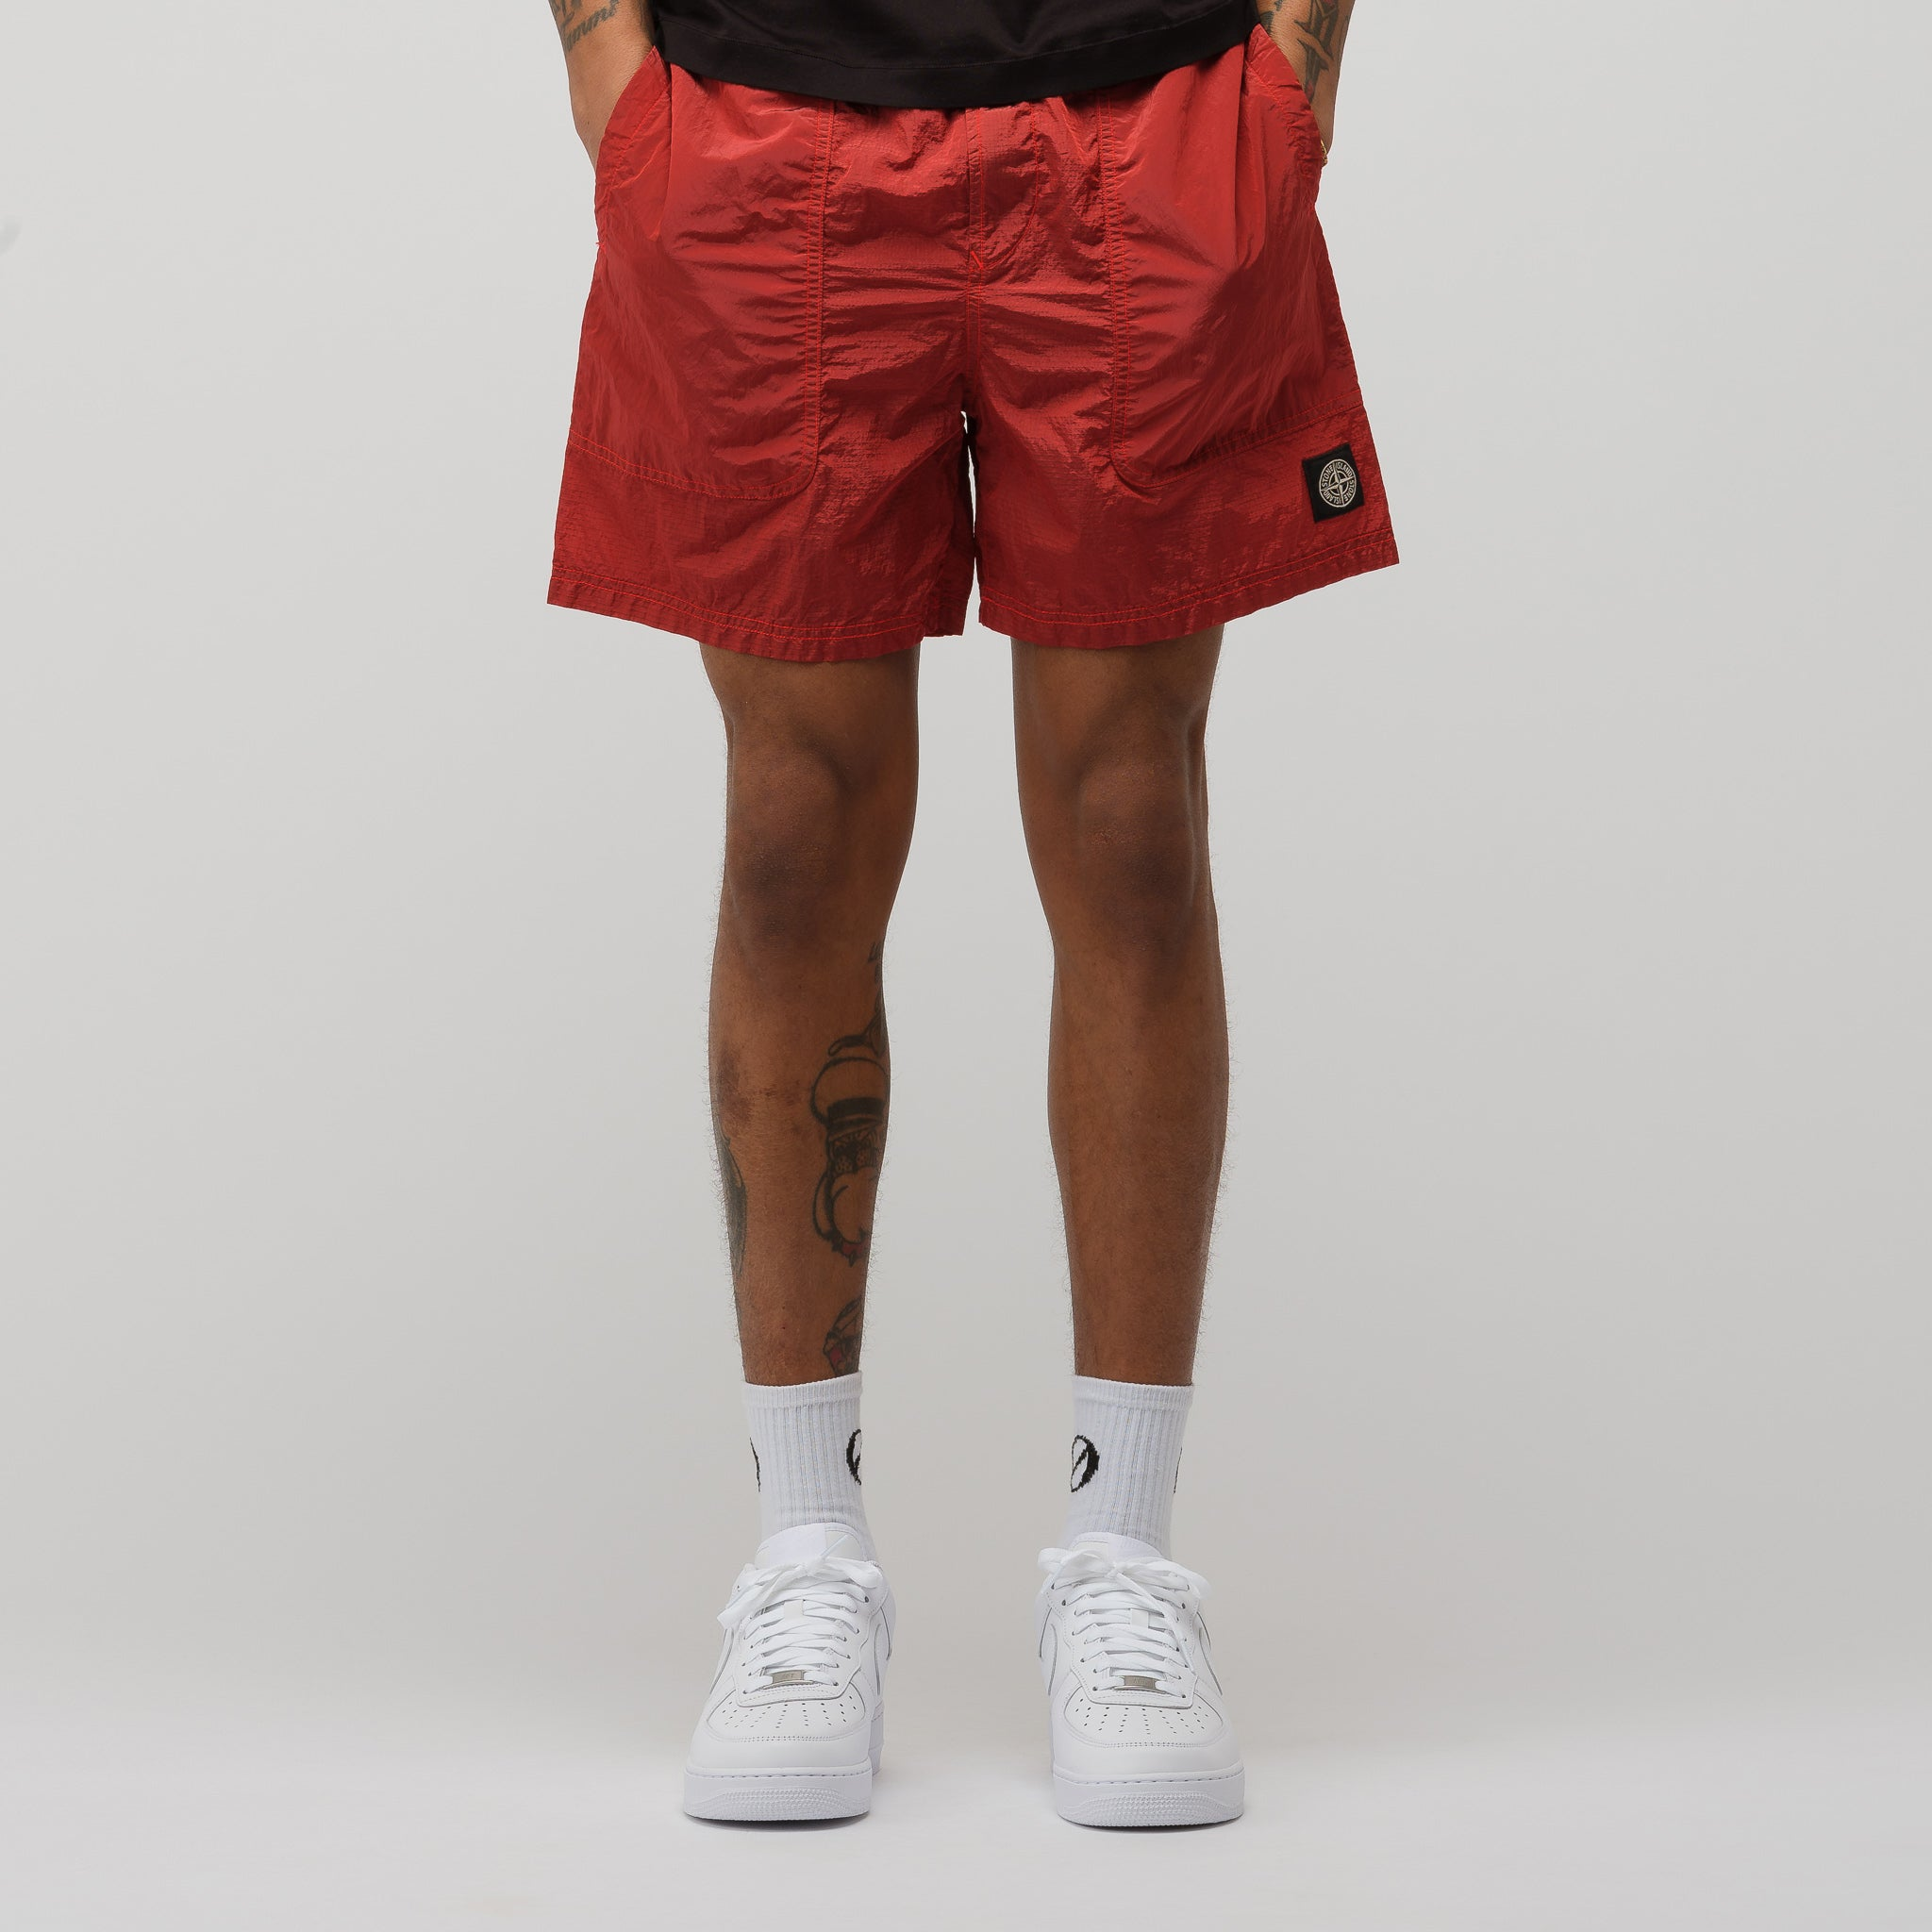 B0519 Short in Red